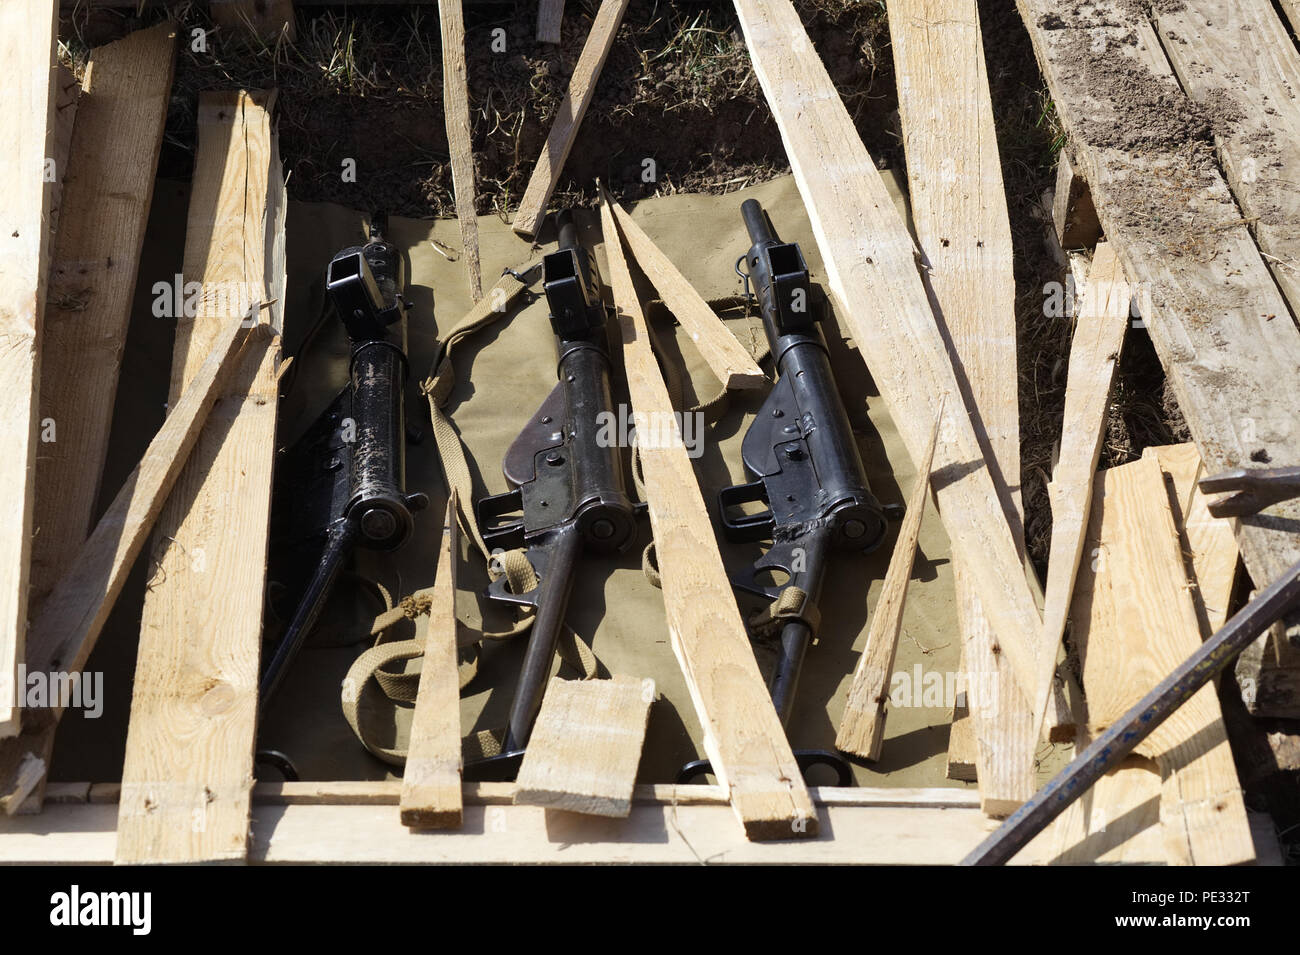 semi automatic and machine guns and rifles found hidden under decking at a house - Stock Image